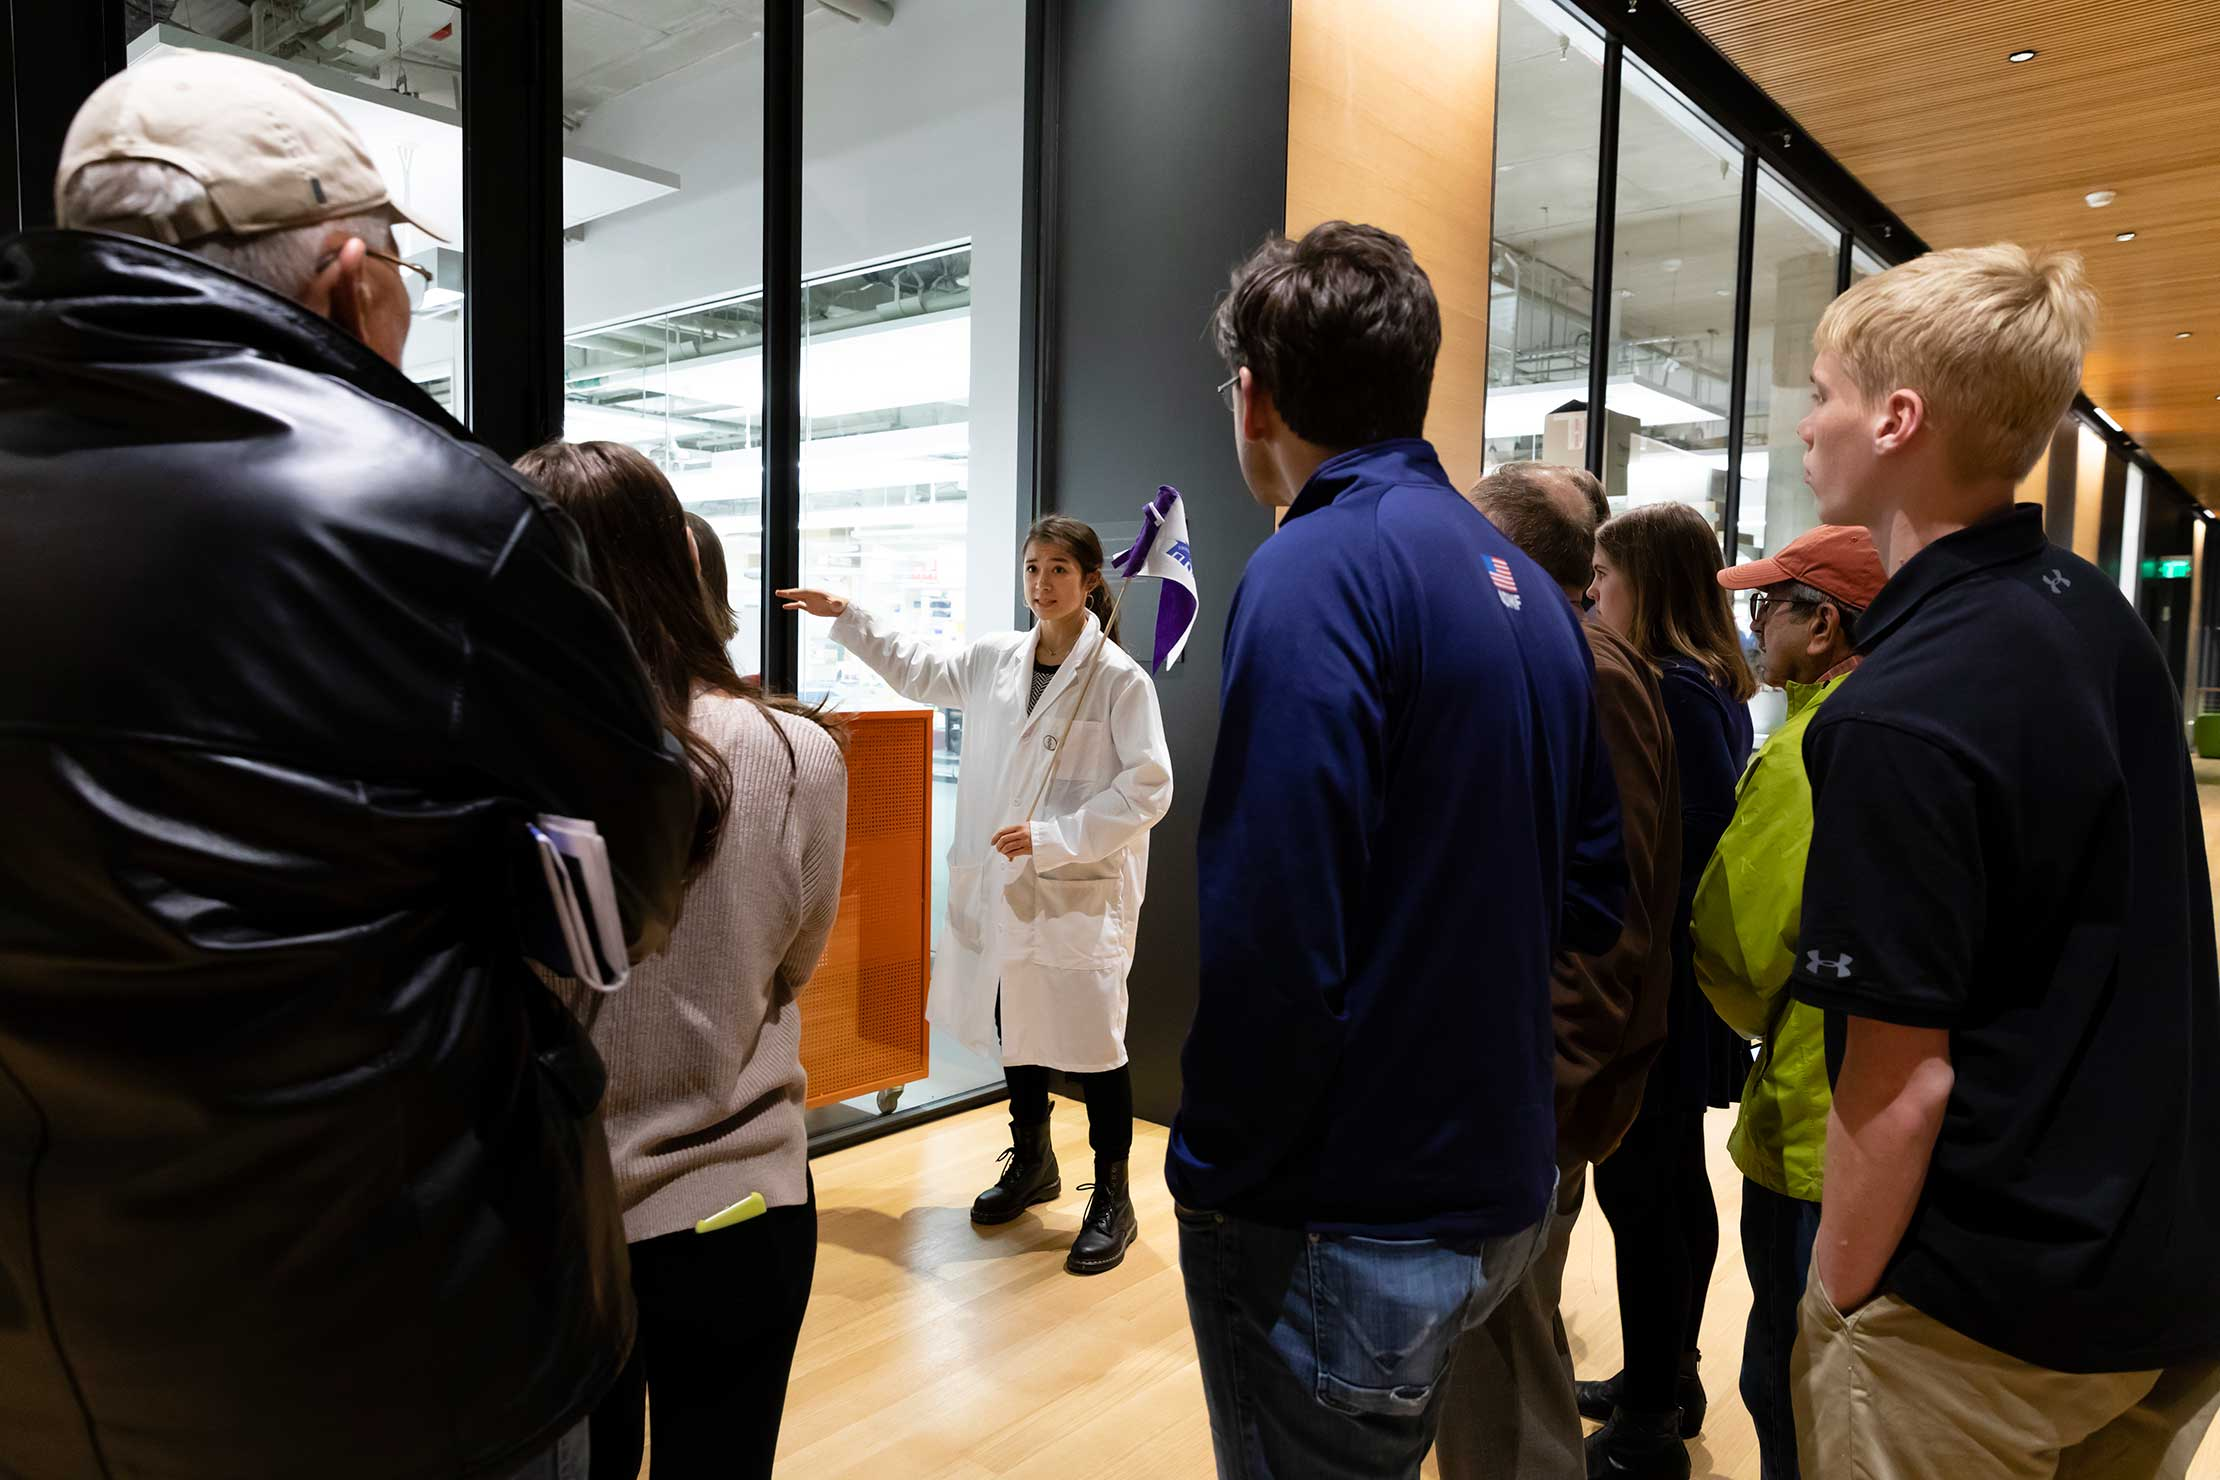 Tours of the new Science Center were a popular activity.